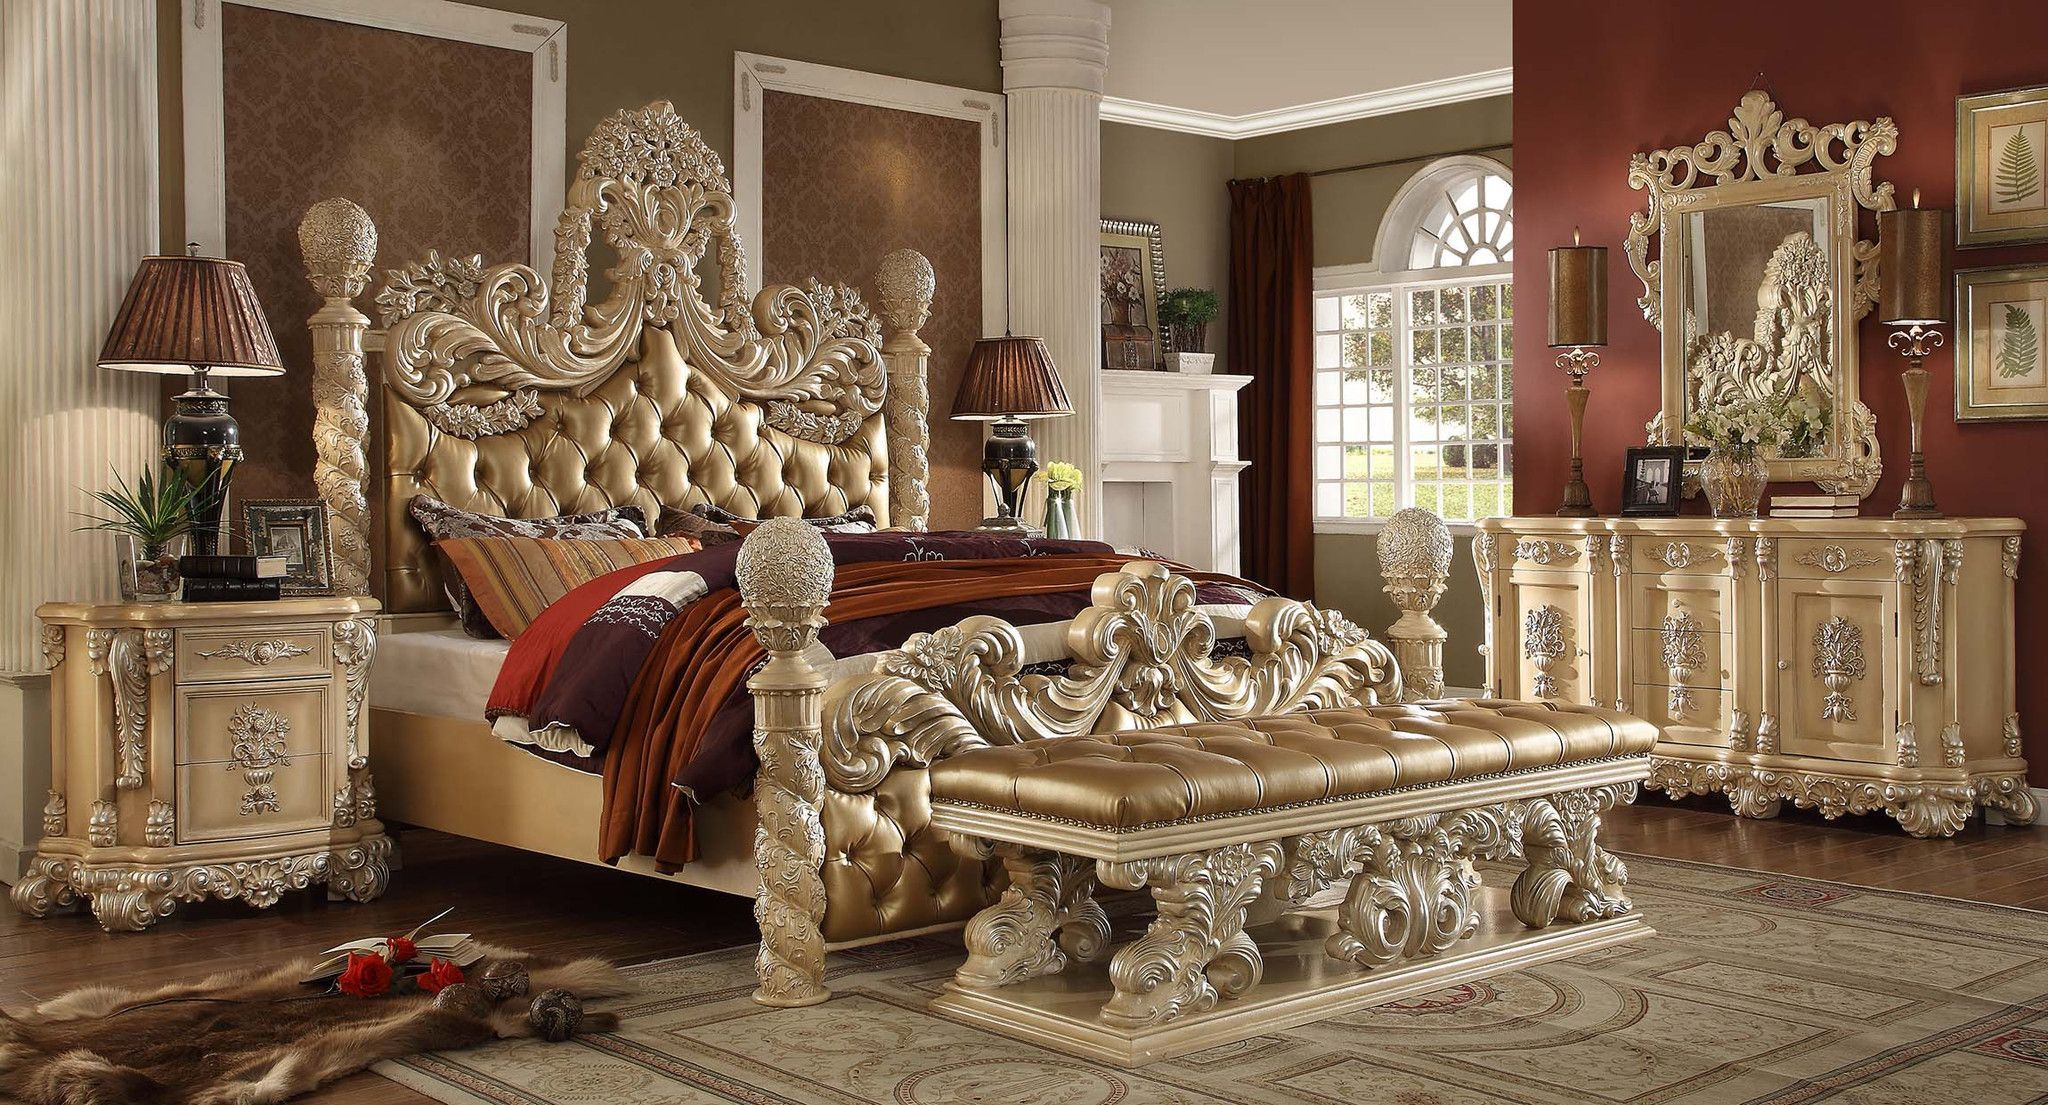 Homey Design Hd 7266 Victorian Classic King Bedroom Set California King Bedroom Sets Luxury King Bed Bedroom Set